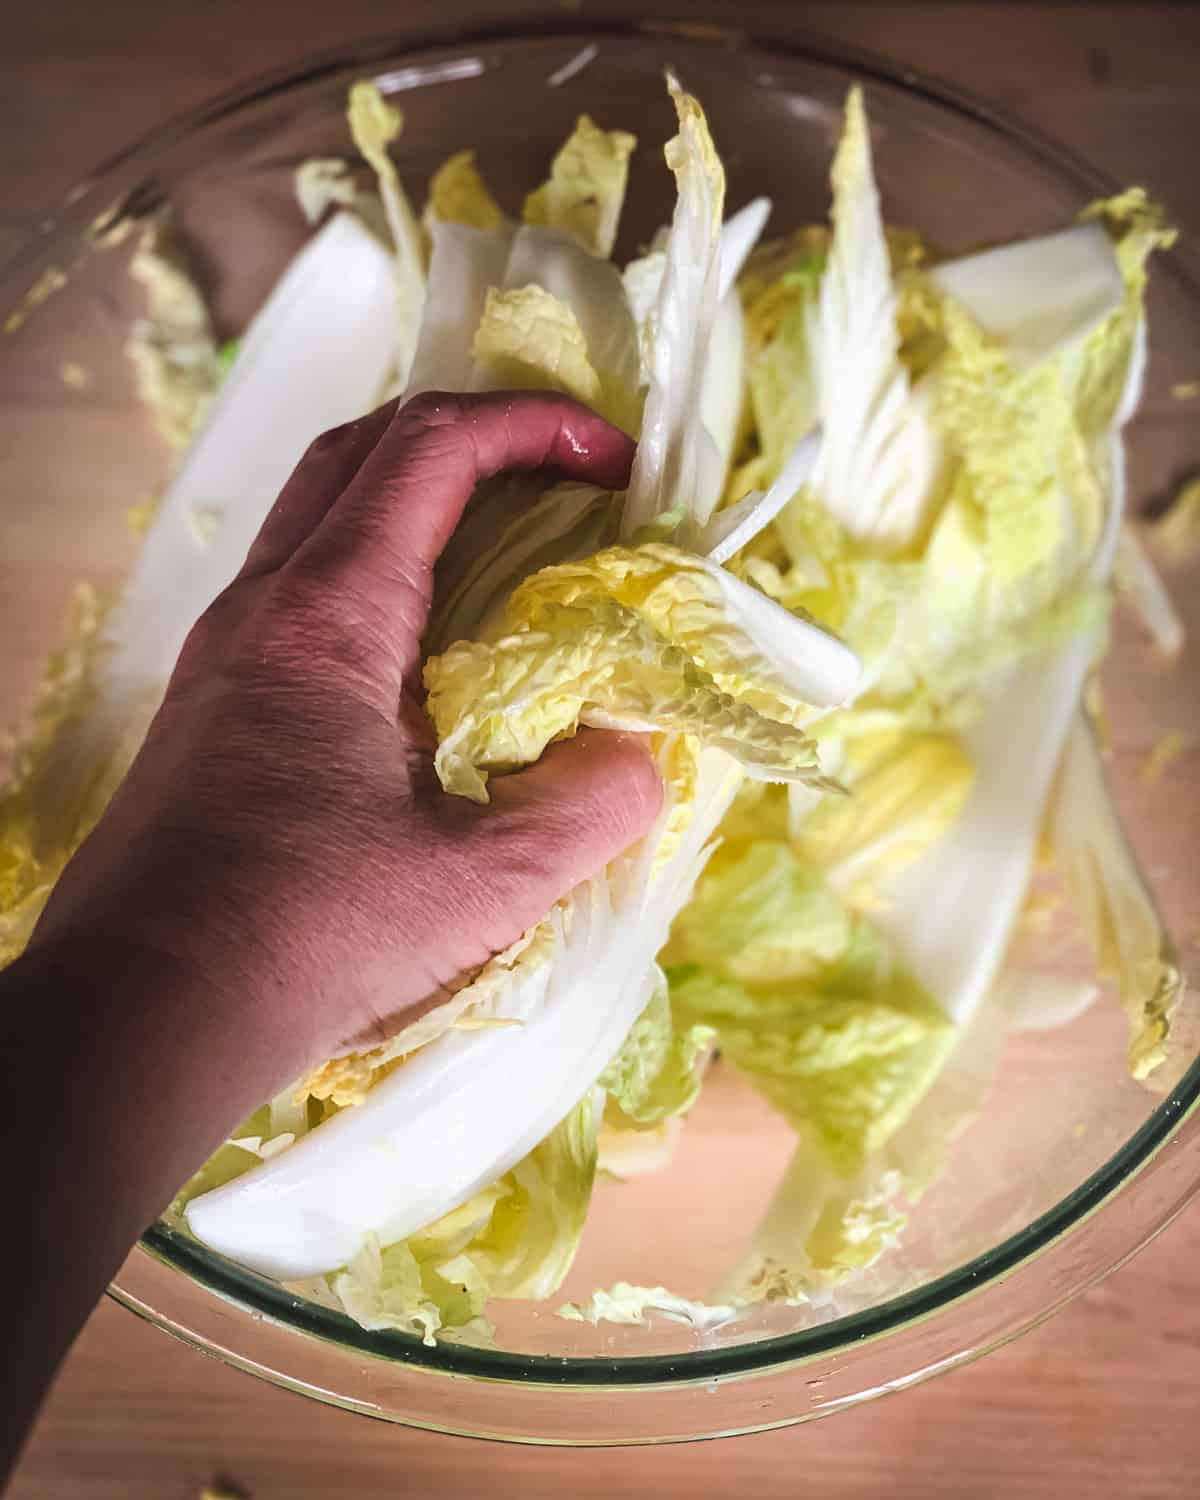 a hand massaging the salt into the cabbage